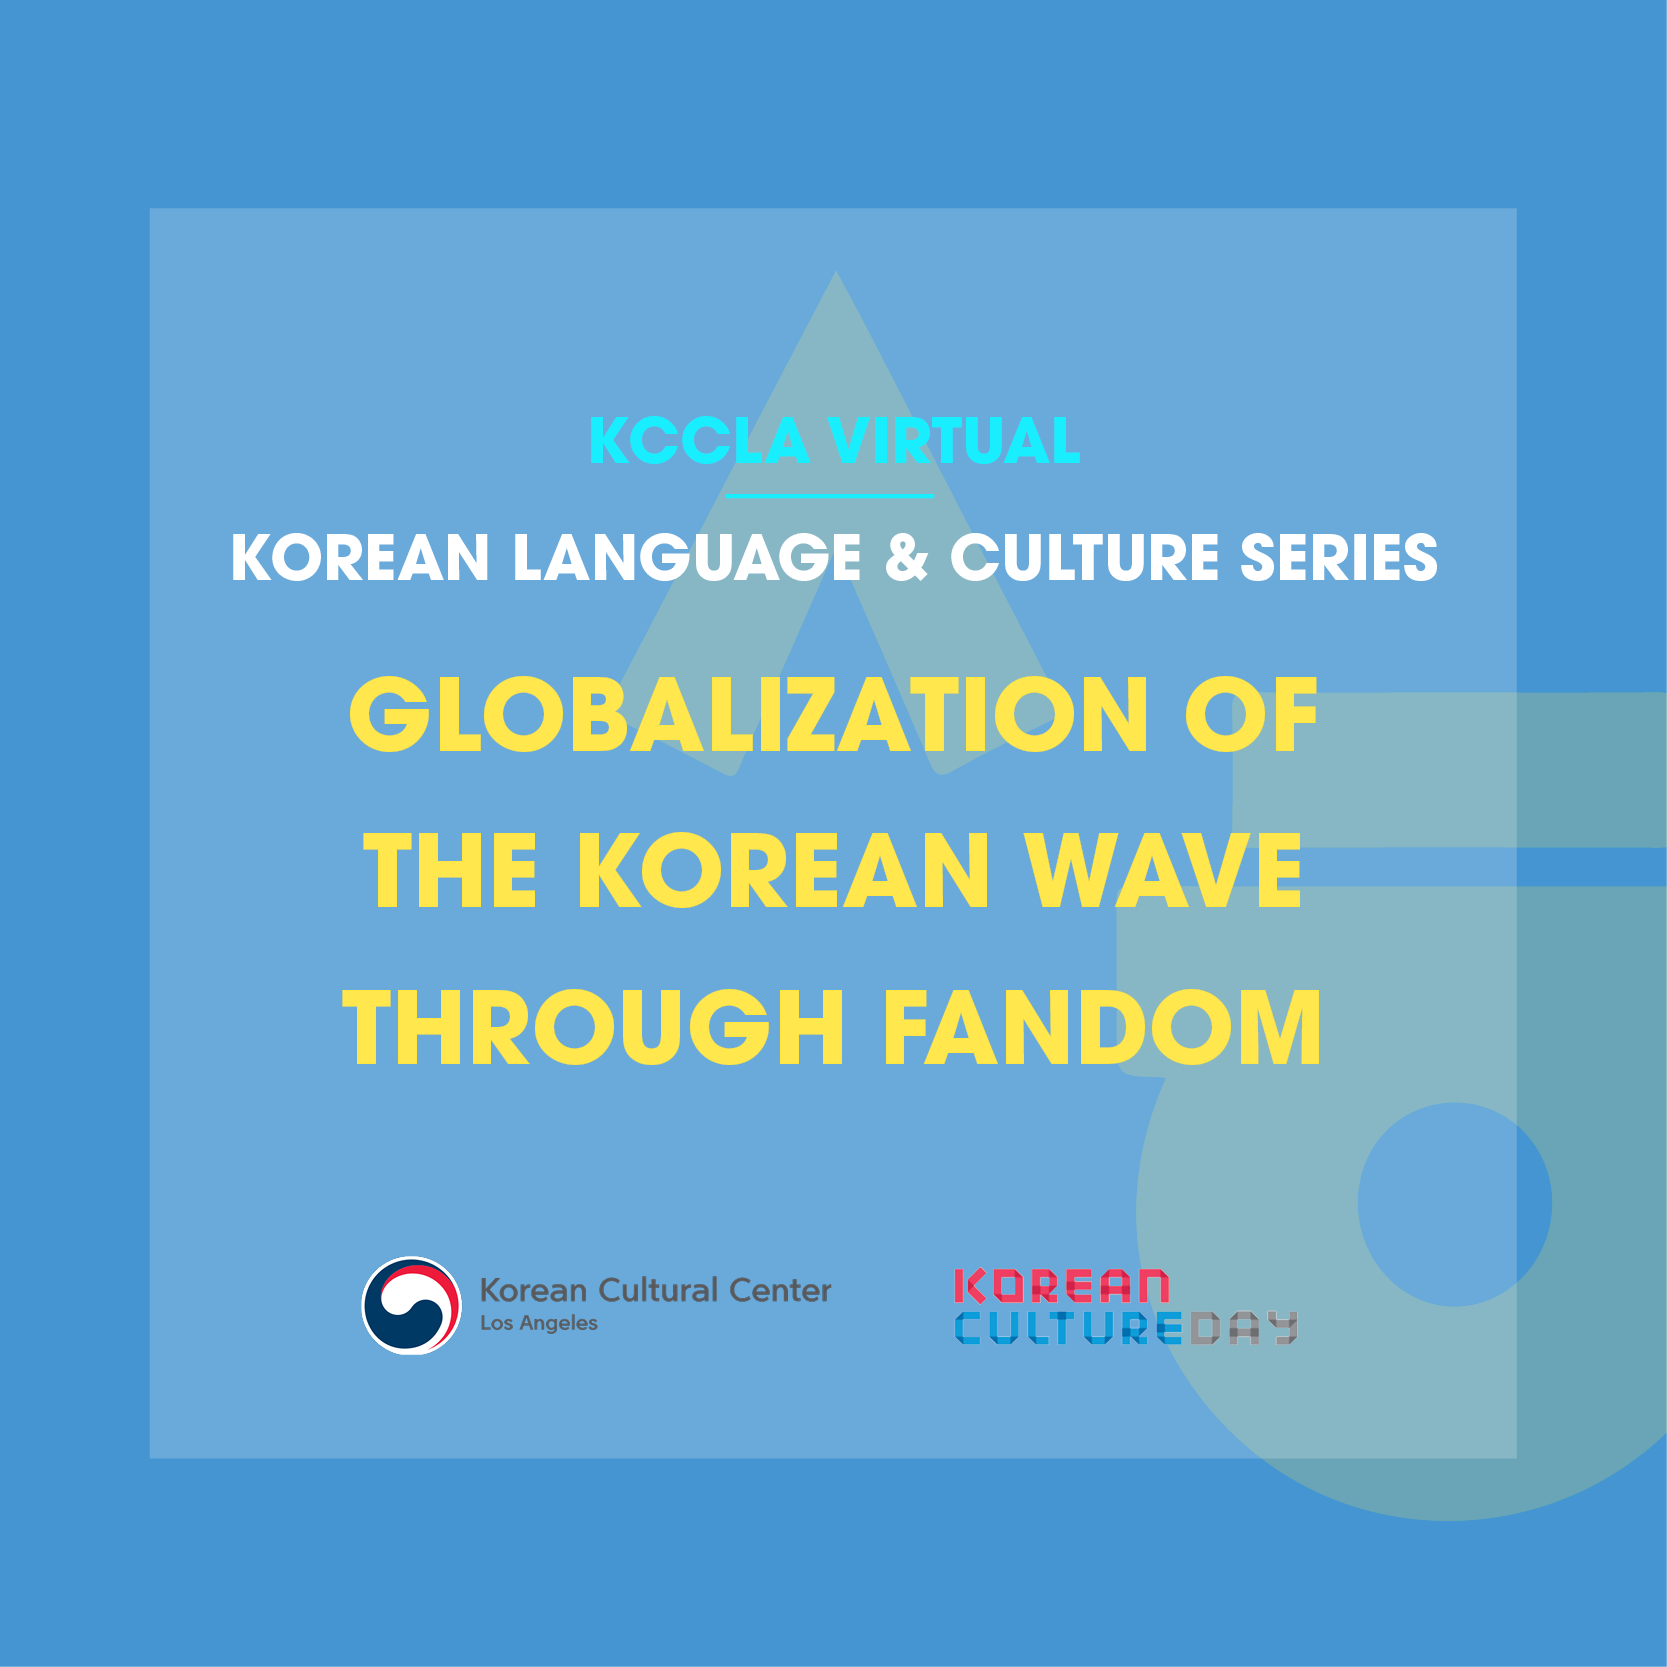 Korean Culture Day : Globalization of the Korean Wave Through Fandom